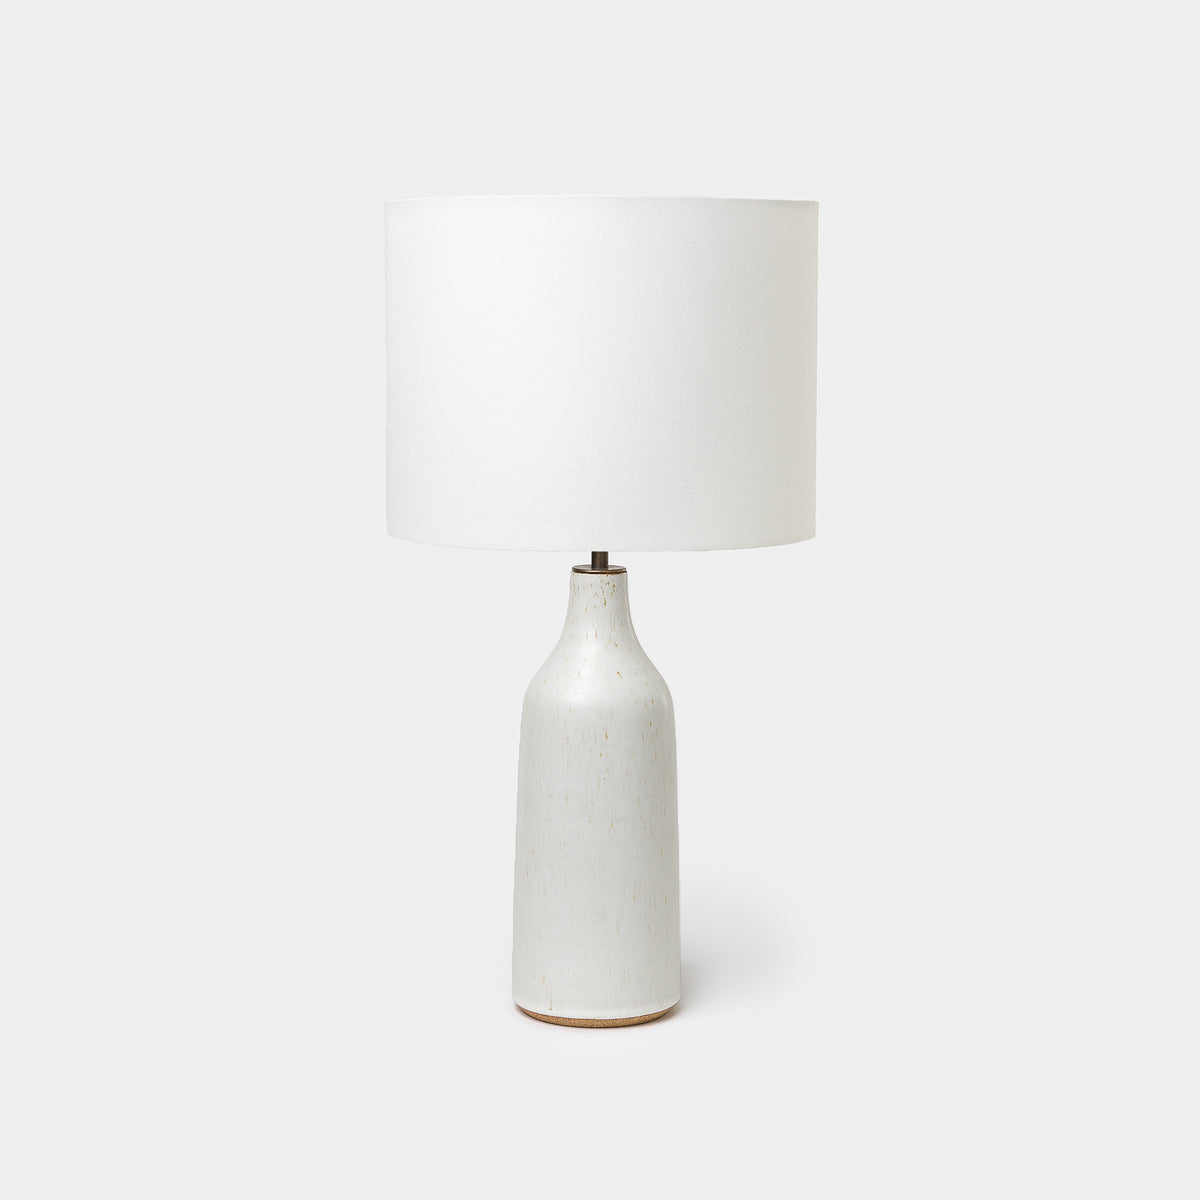 Load image into Gallery viewer, Speckled Ivory Bottle Lamp - Lighting - Designer - Lamps – Shoppe Amber Interiors